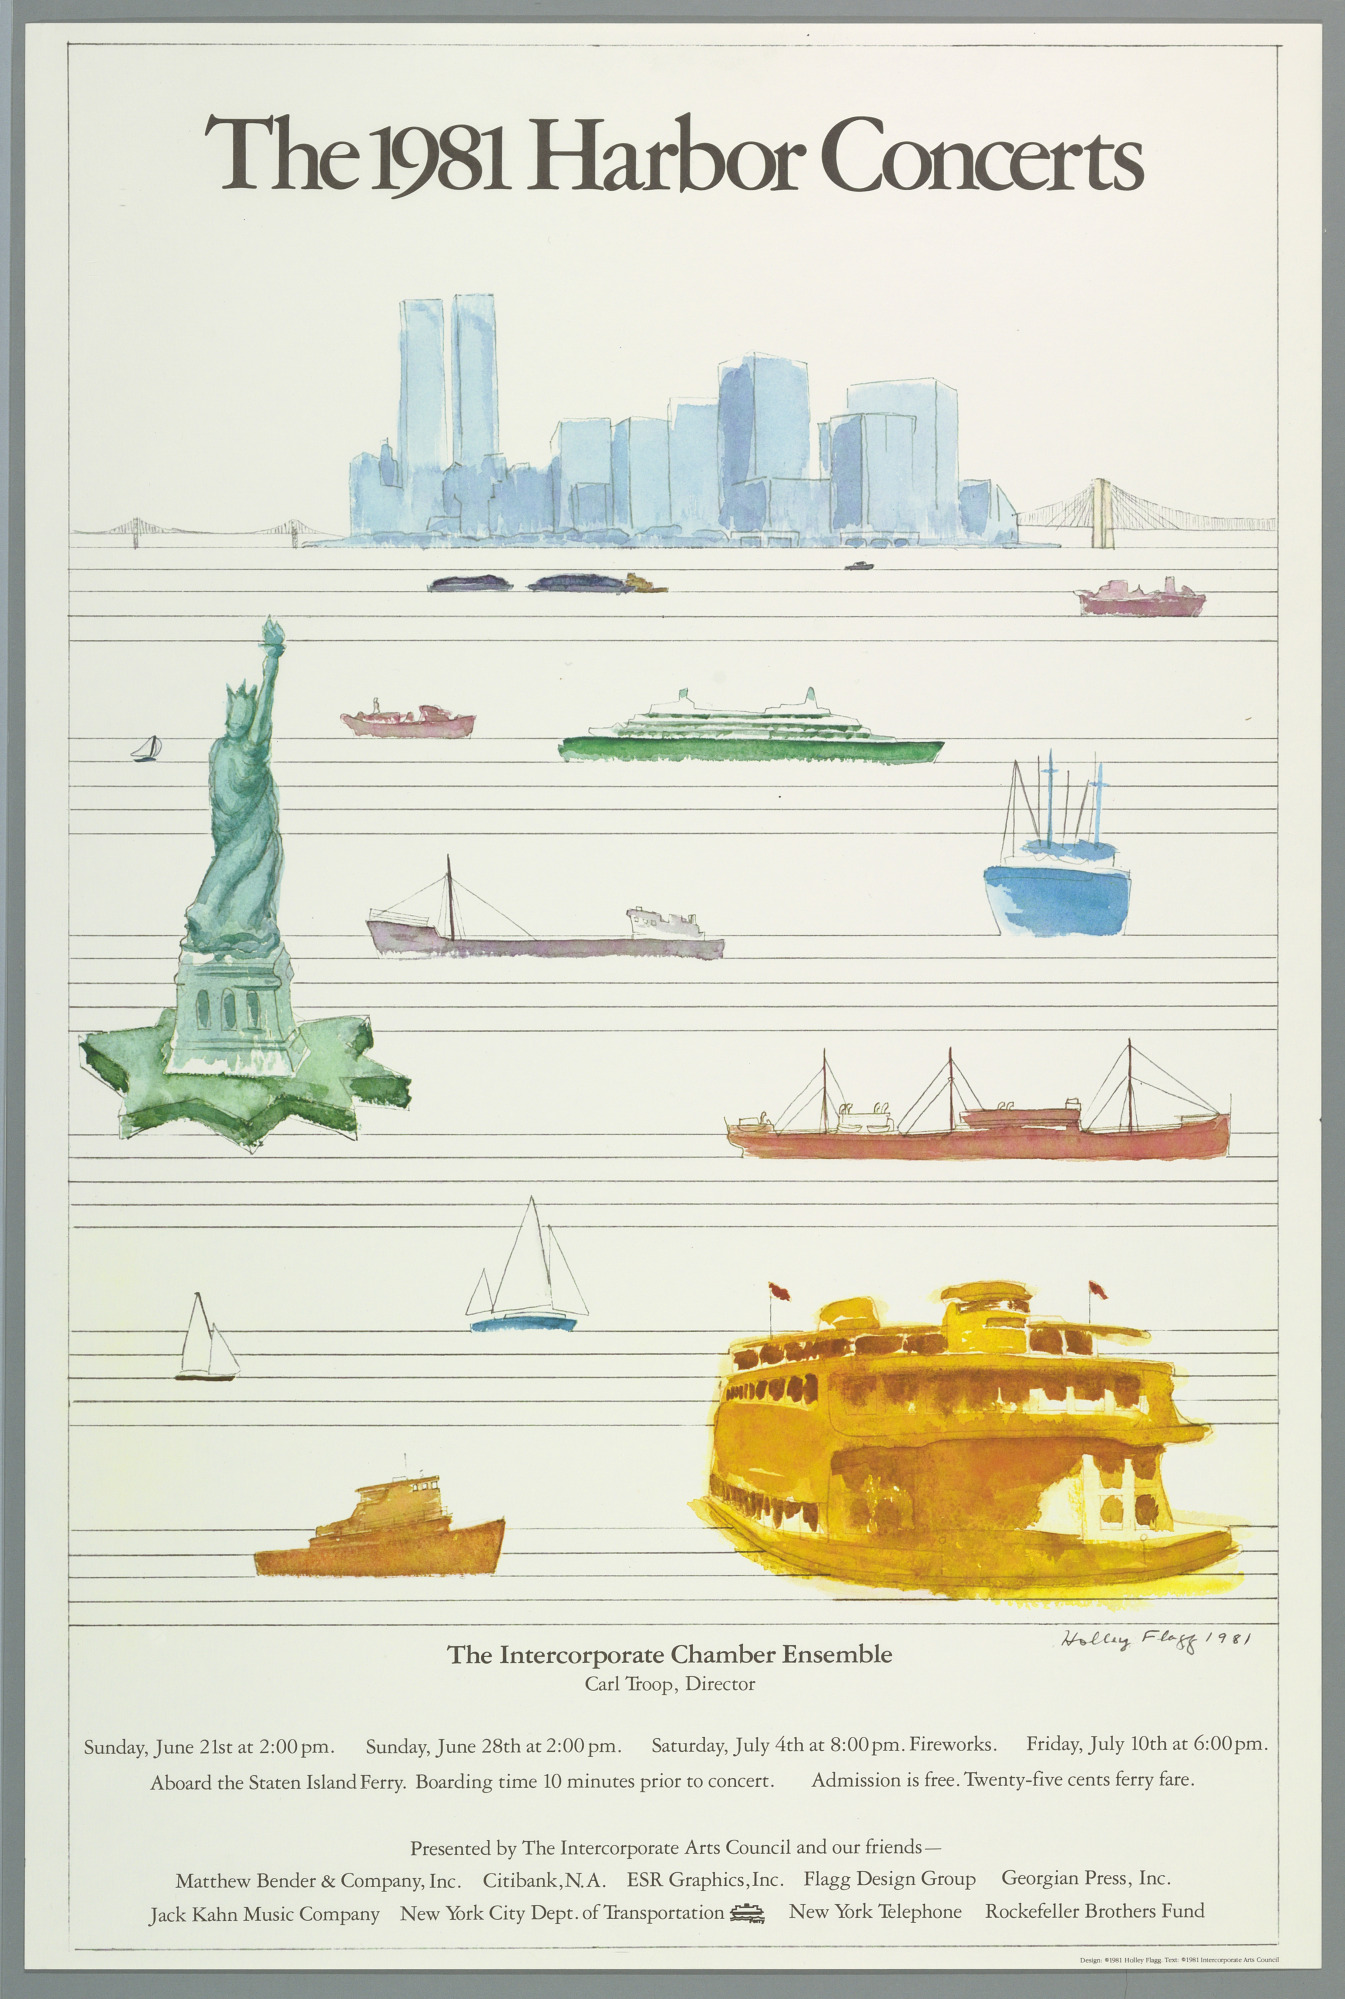 The 1981 Harbor Concerts